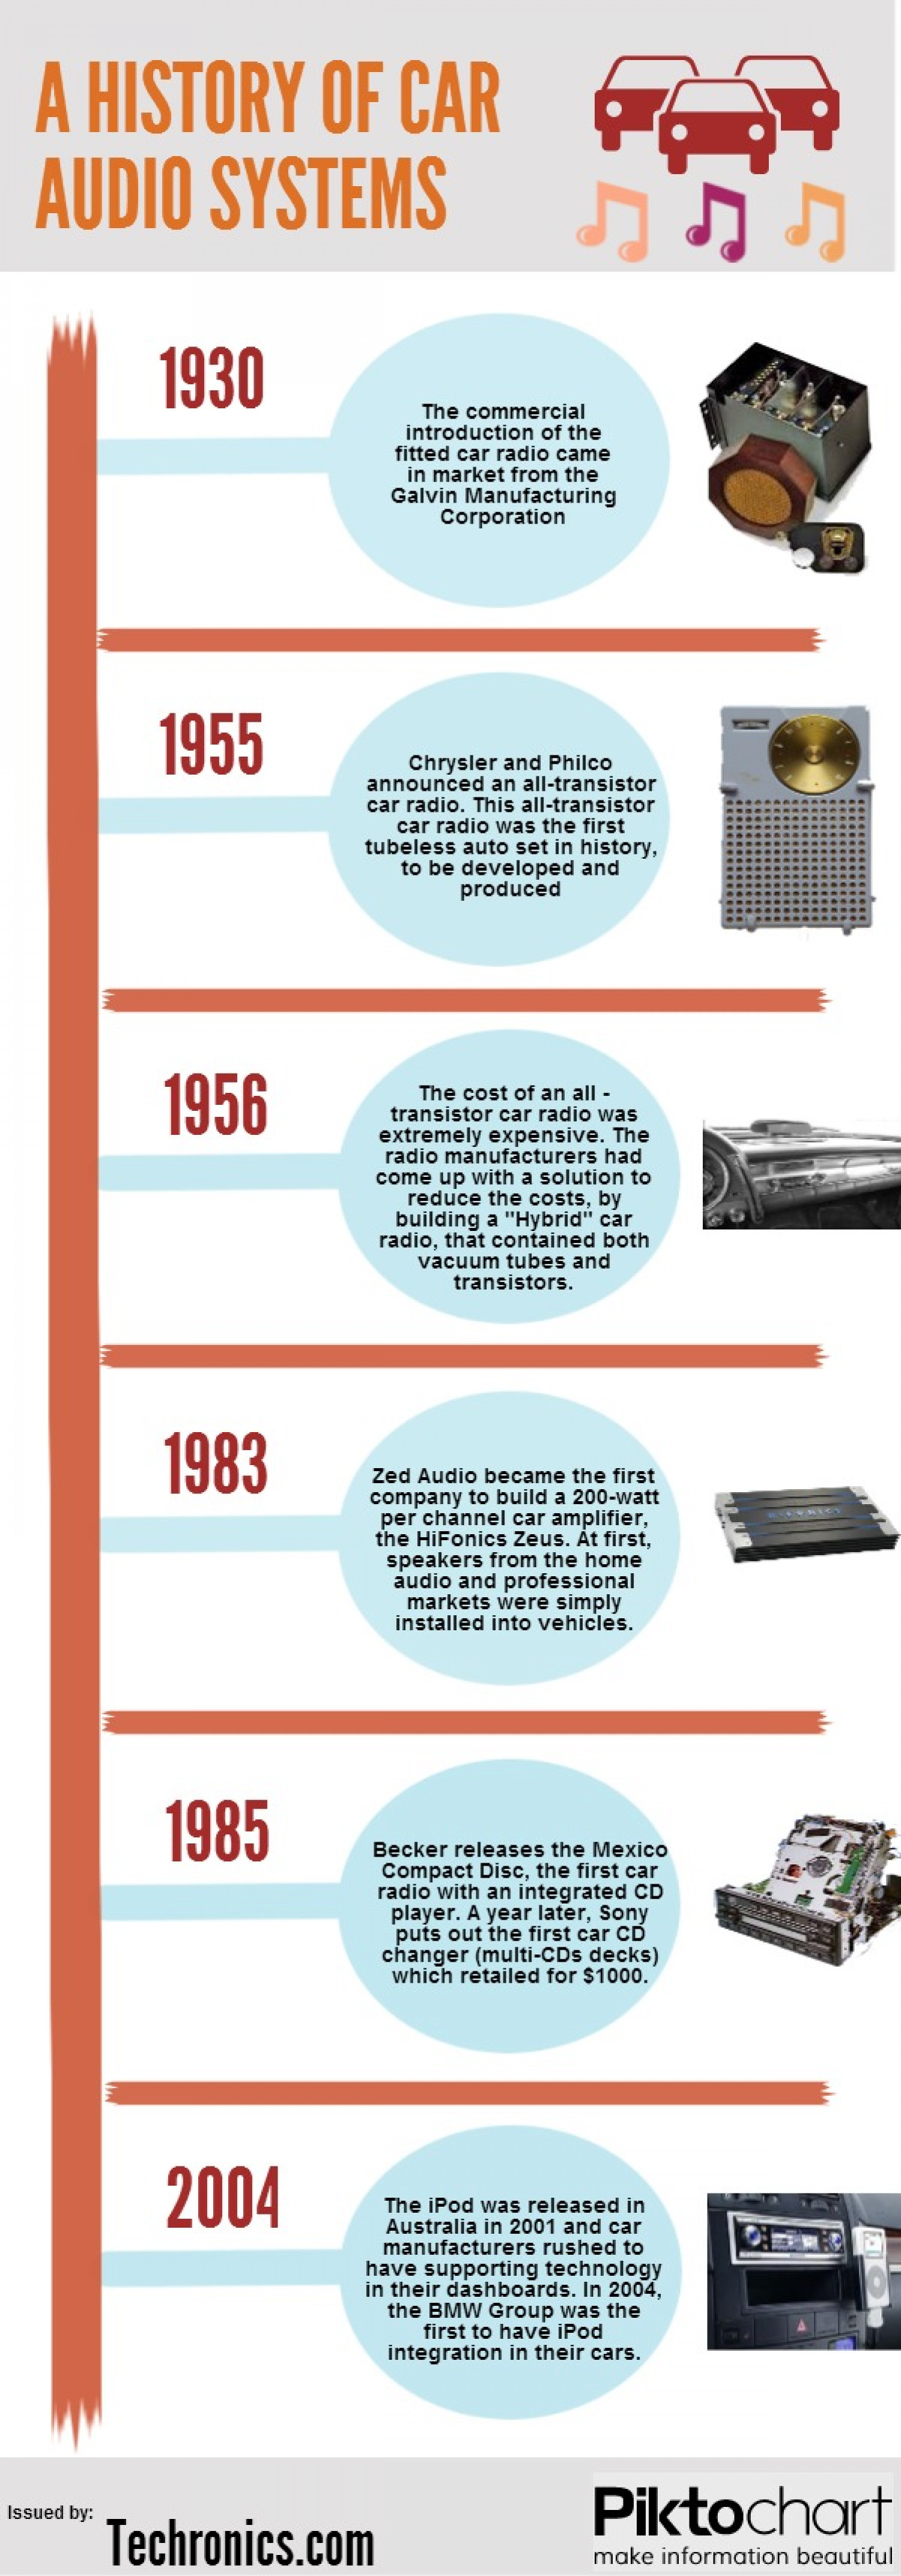 A History of Car Audio Systems Infographic